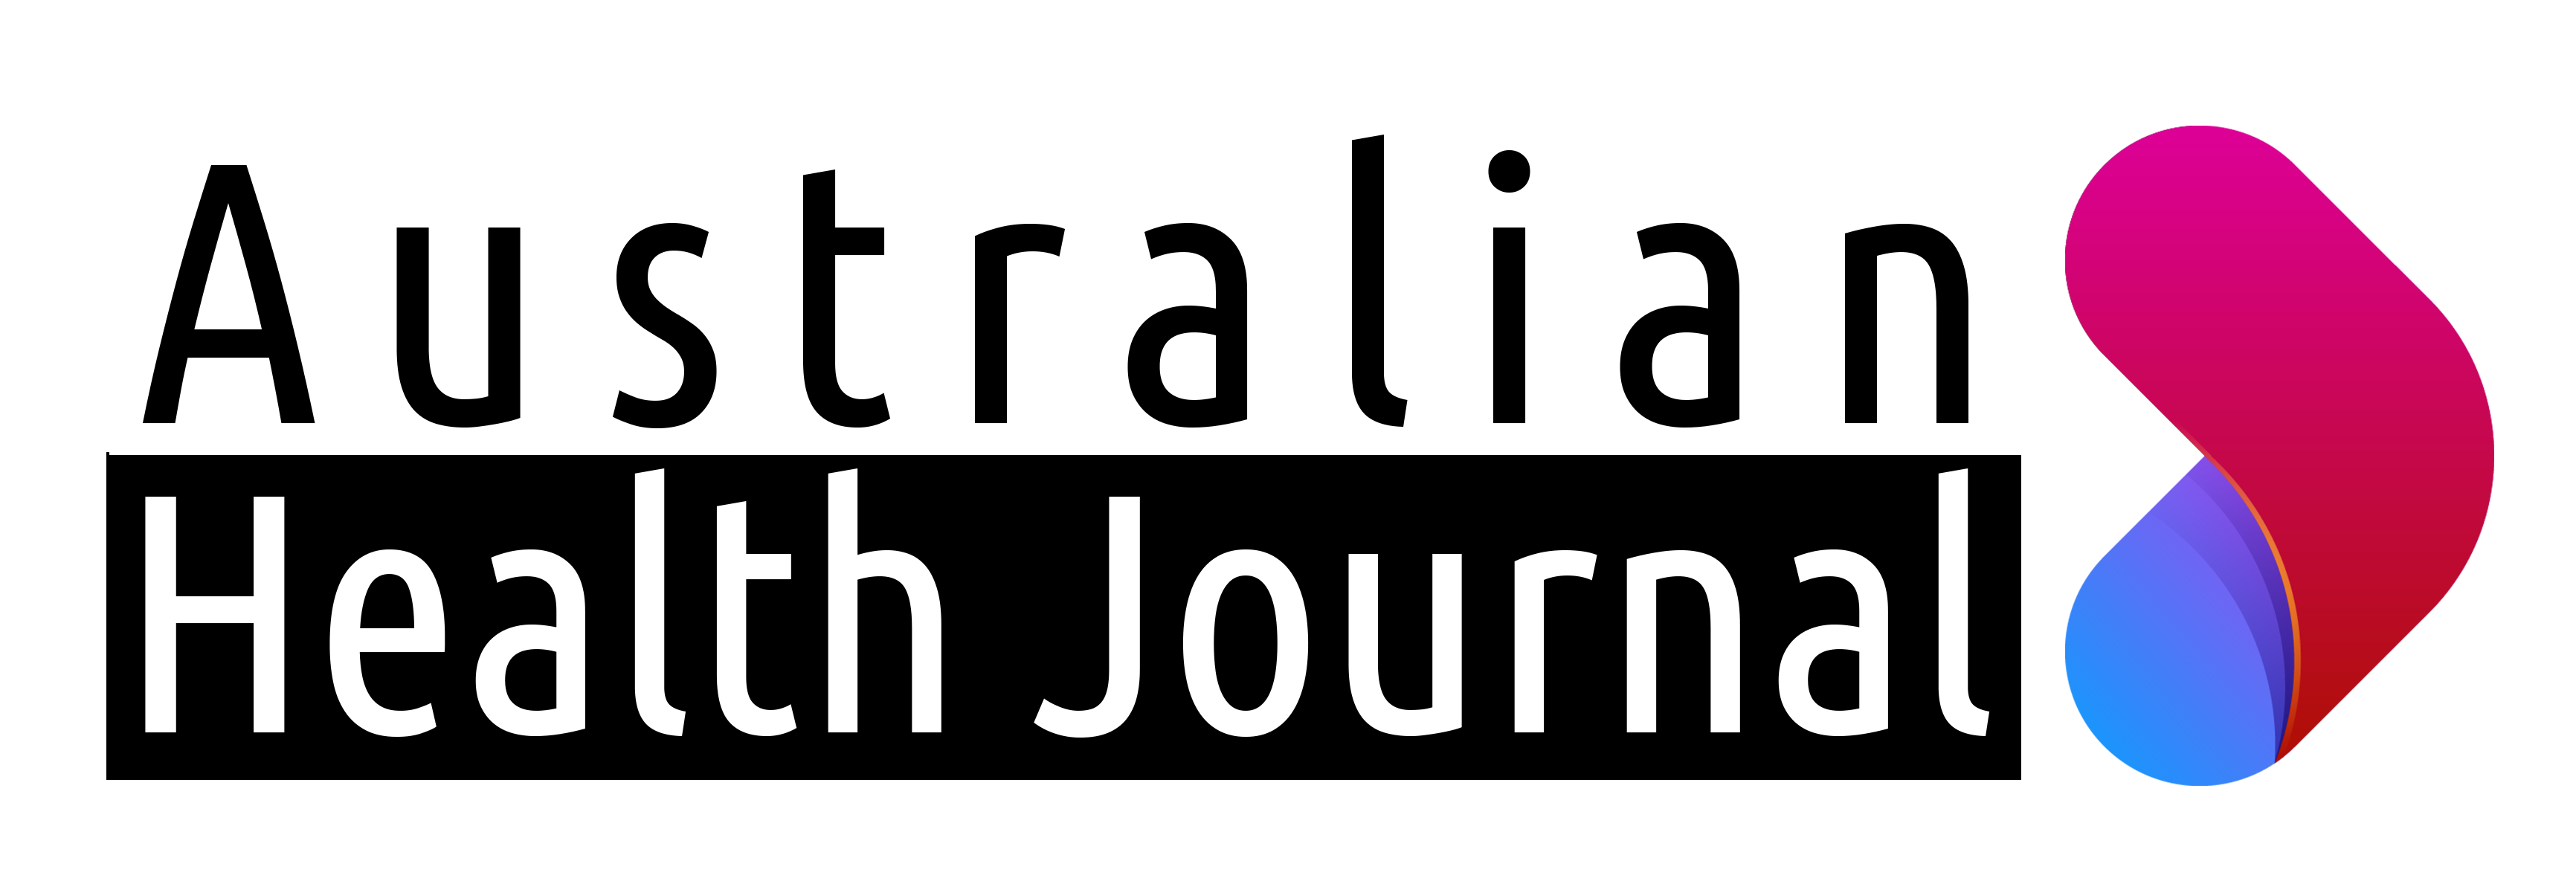 Australian Health Journal